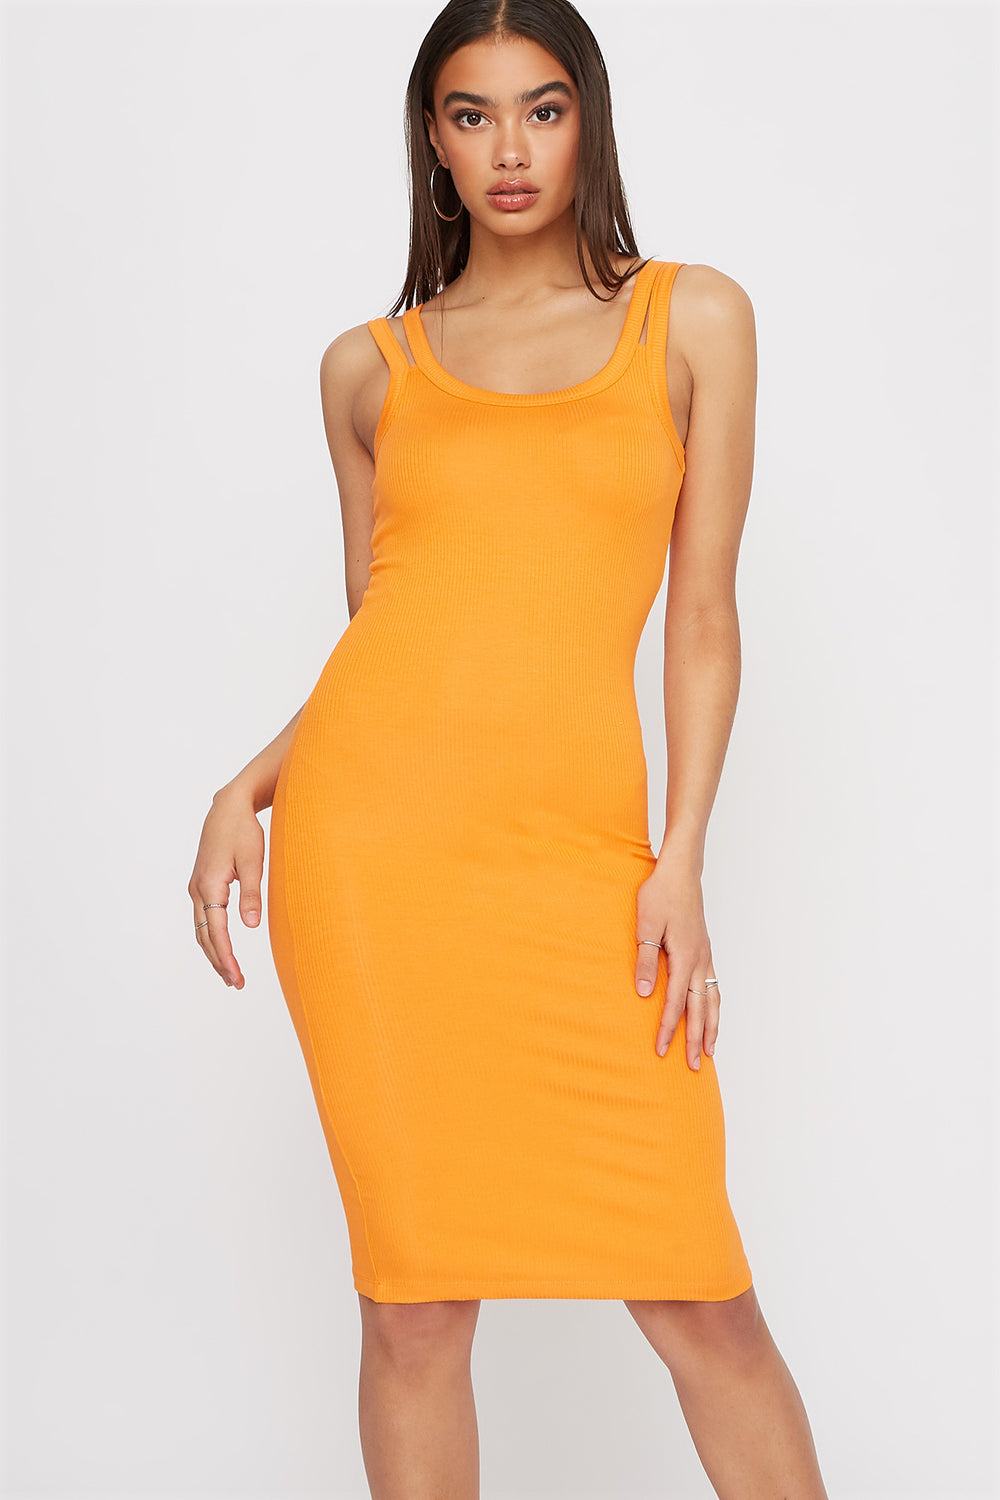 Double Strap Knit Sleeveless Mini Dress Orange